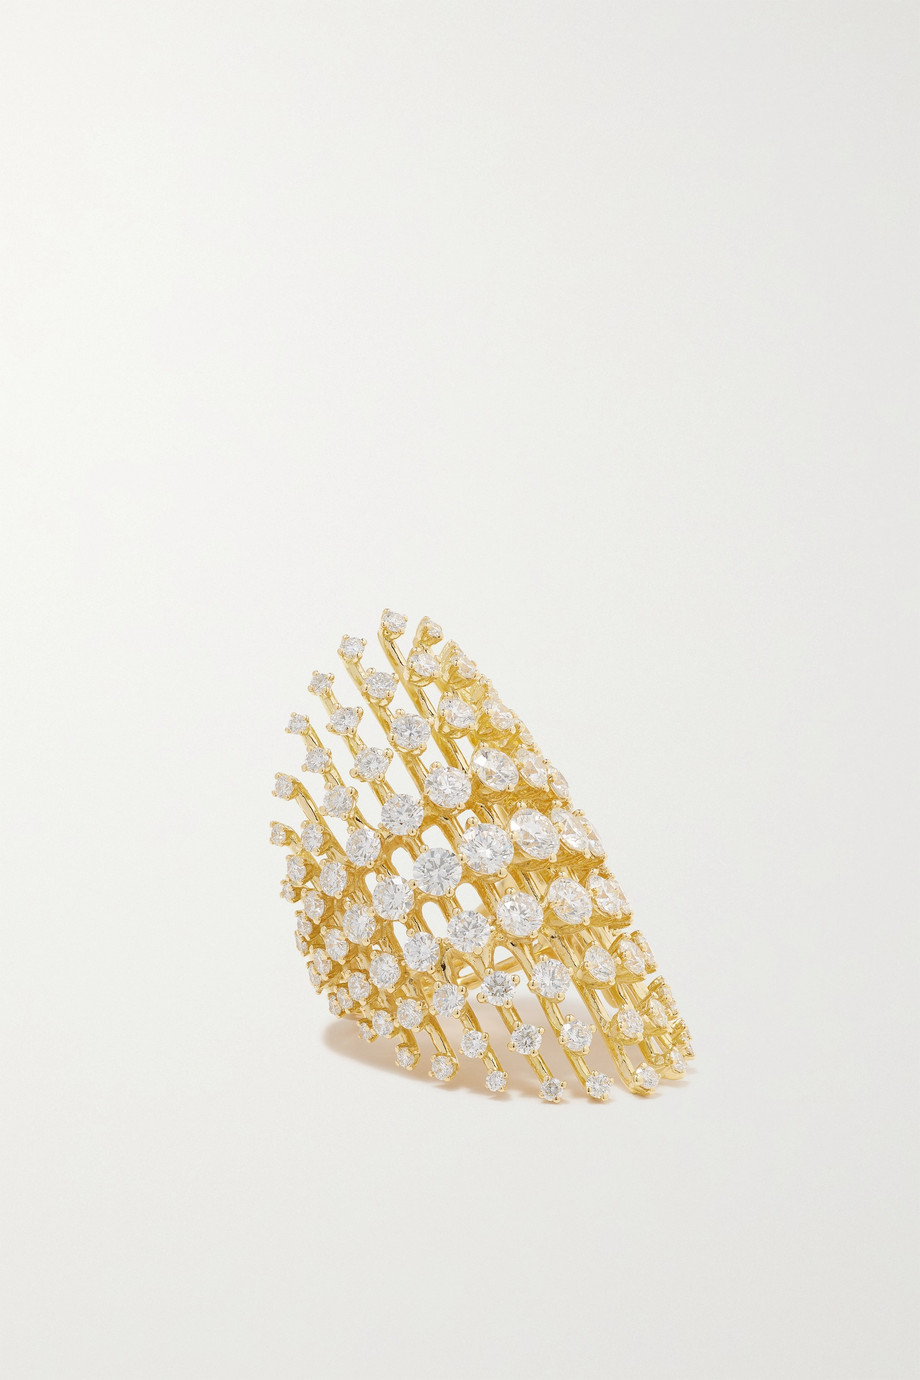 Fernando Jorge Disco 18-karat gold diamond ring